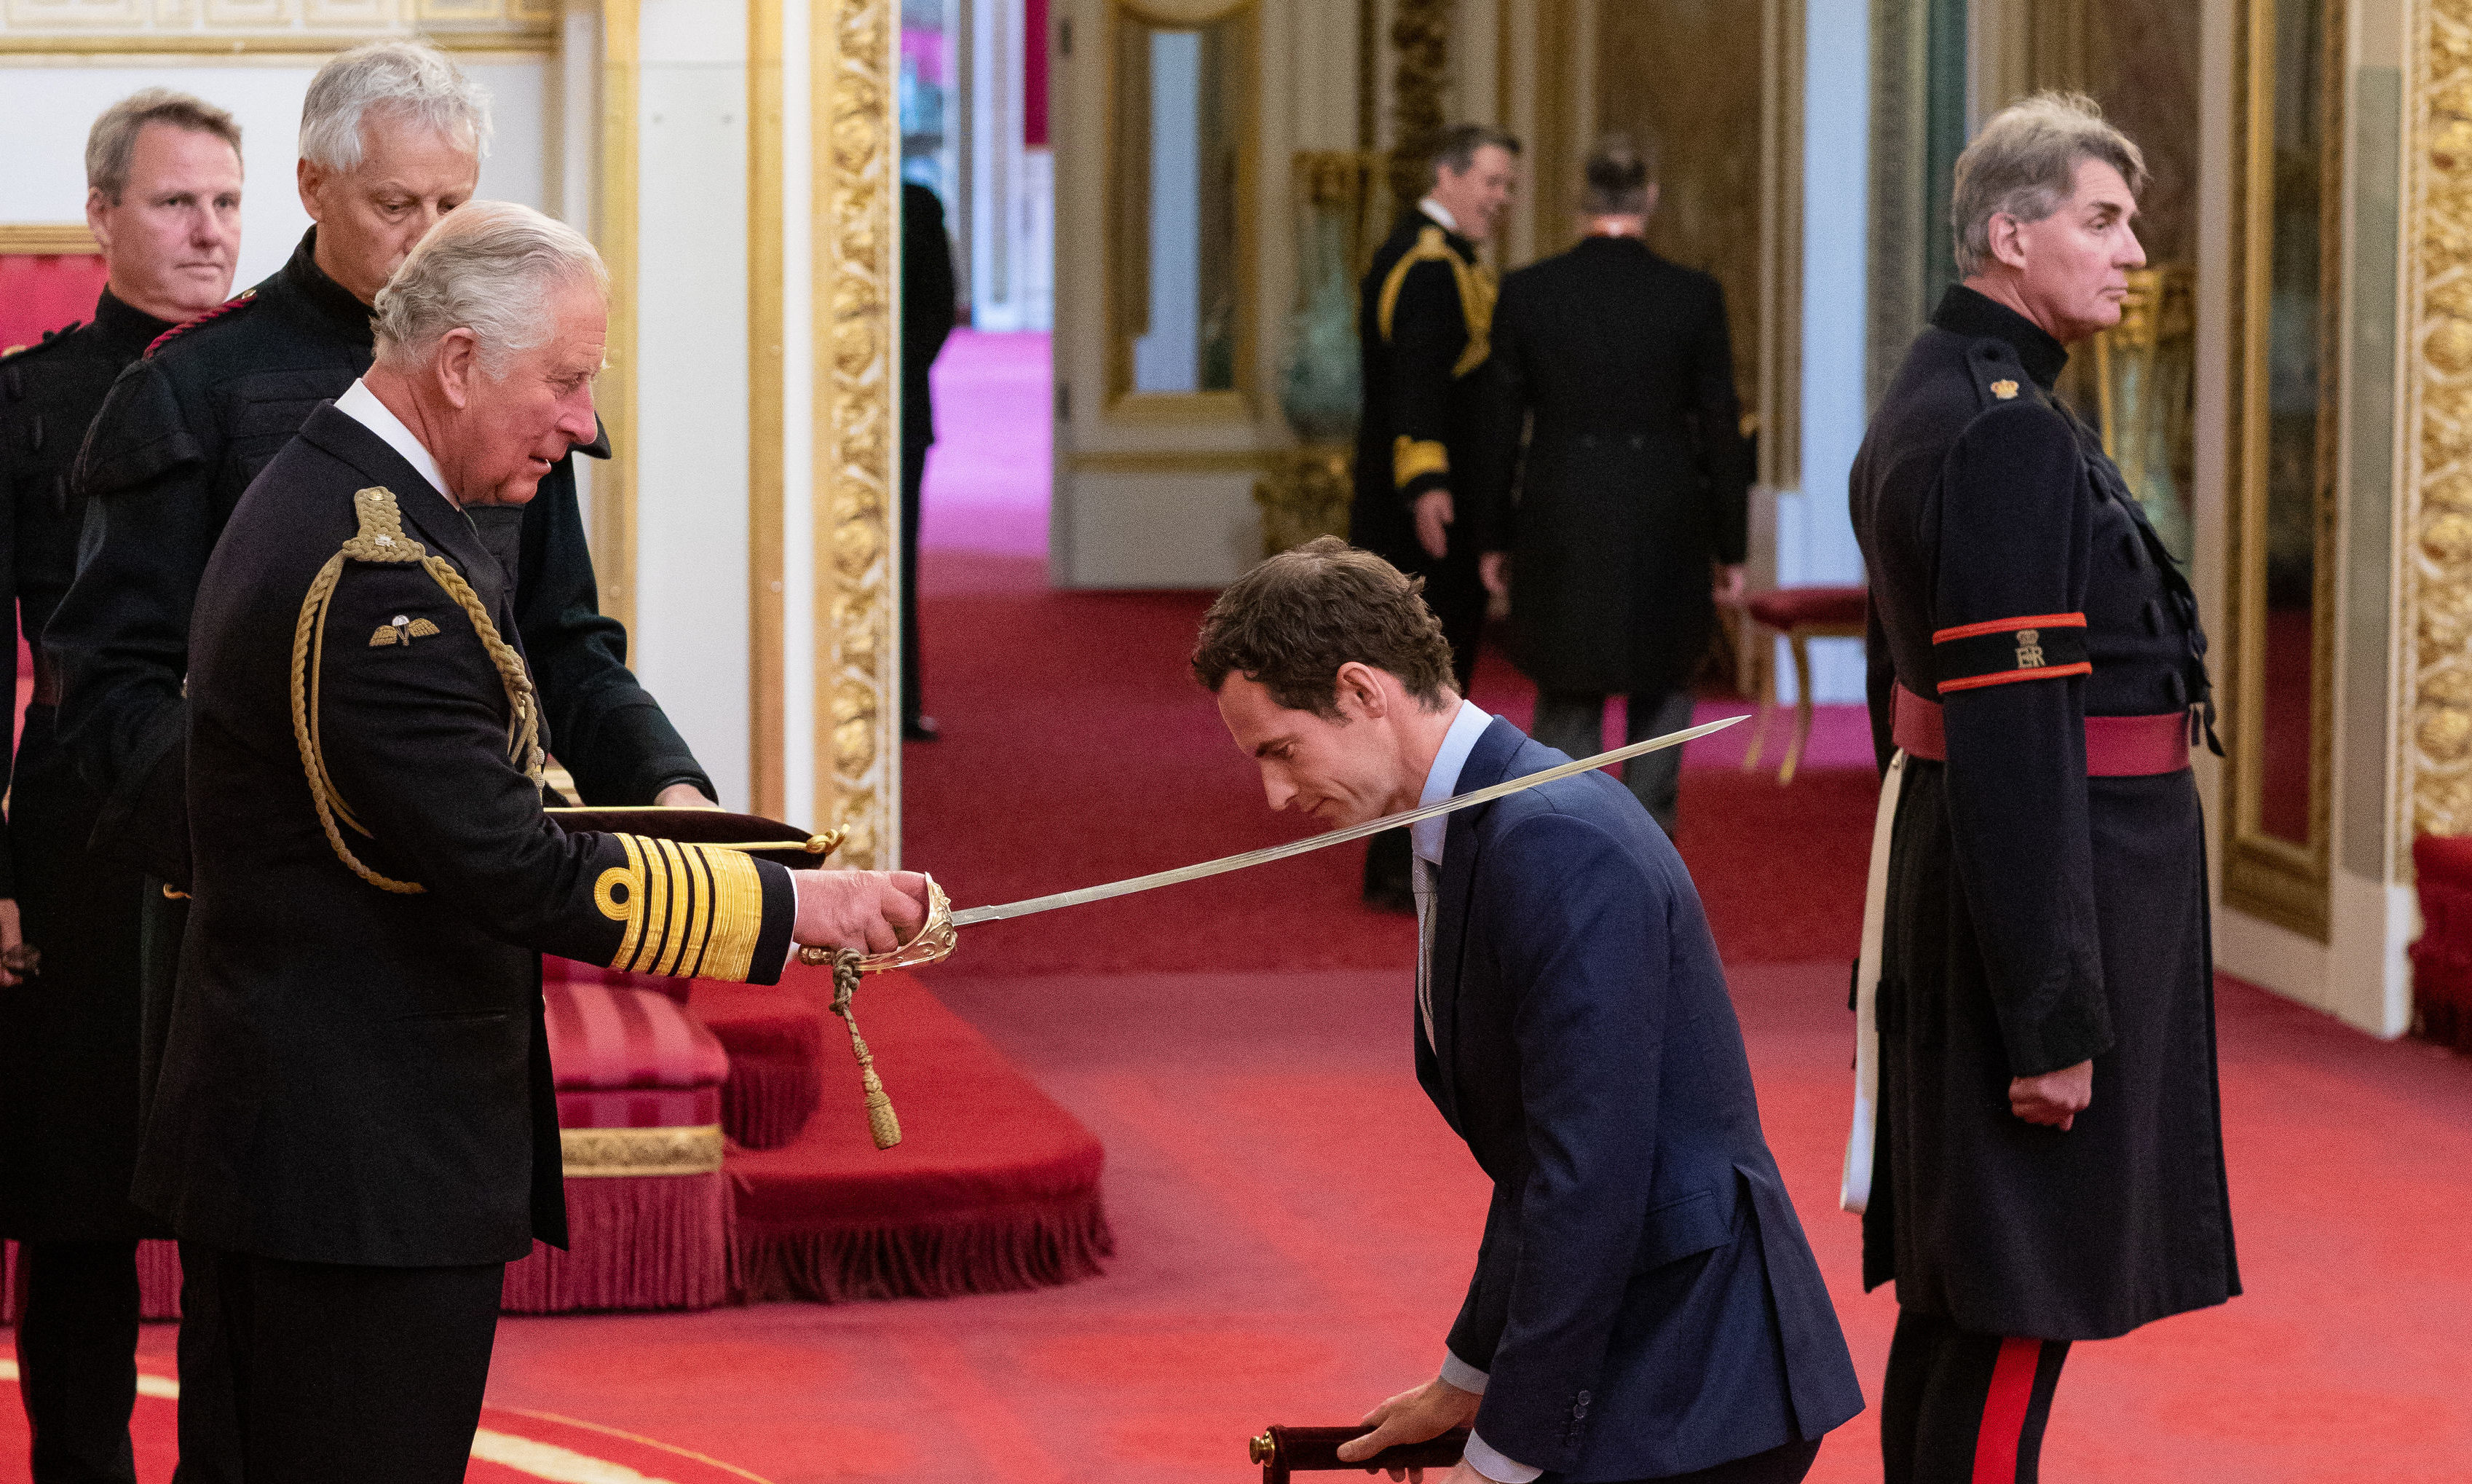 Andy Murray receives his knighthood from the Prince of Wales.